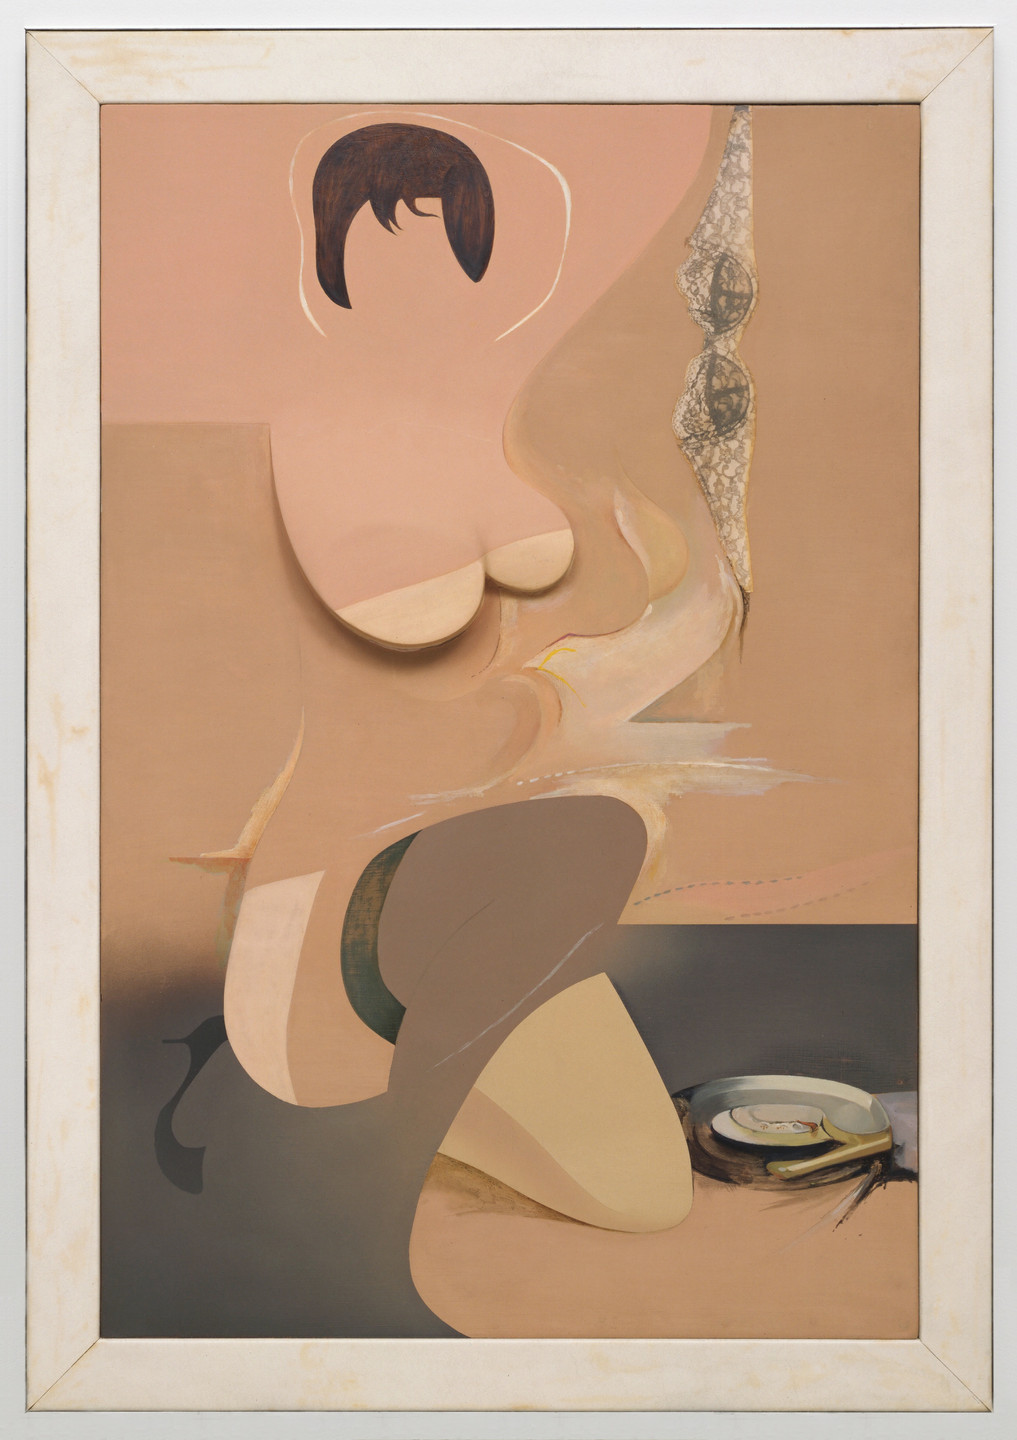 Richard Hamilton. Pin-up. 1961